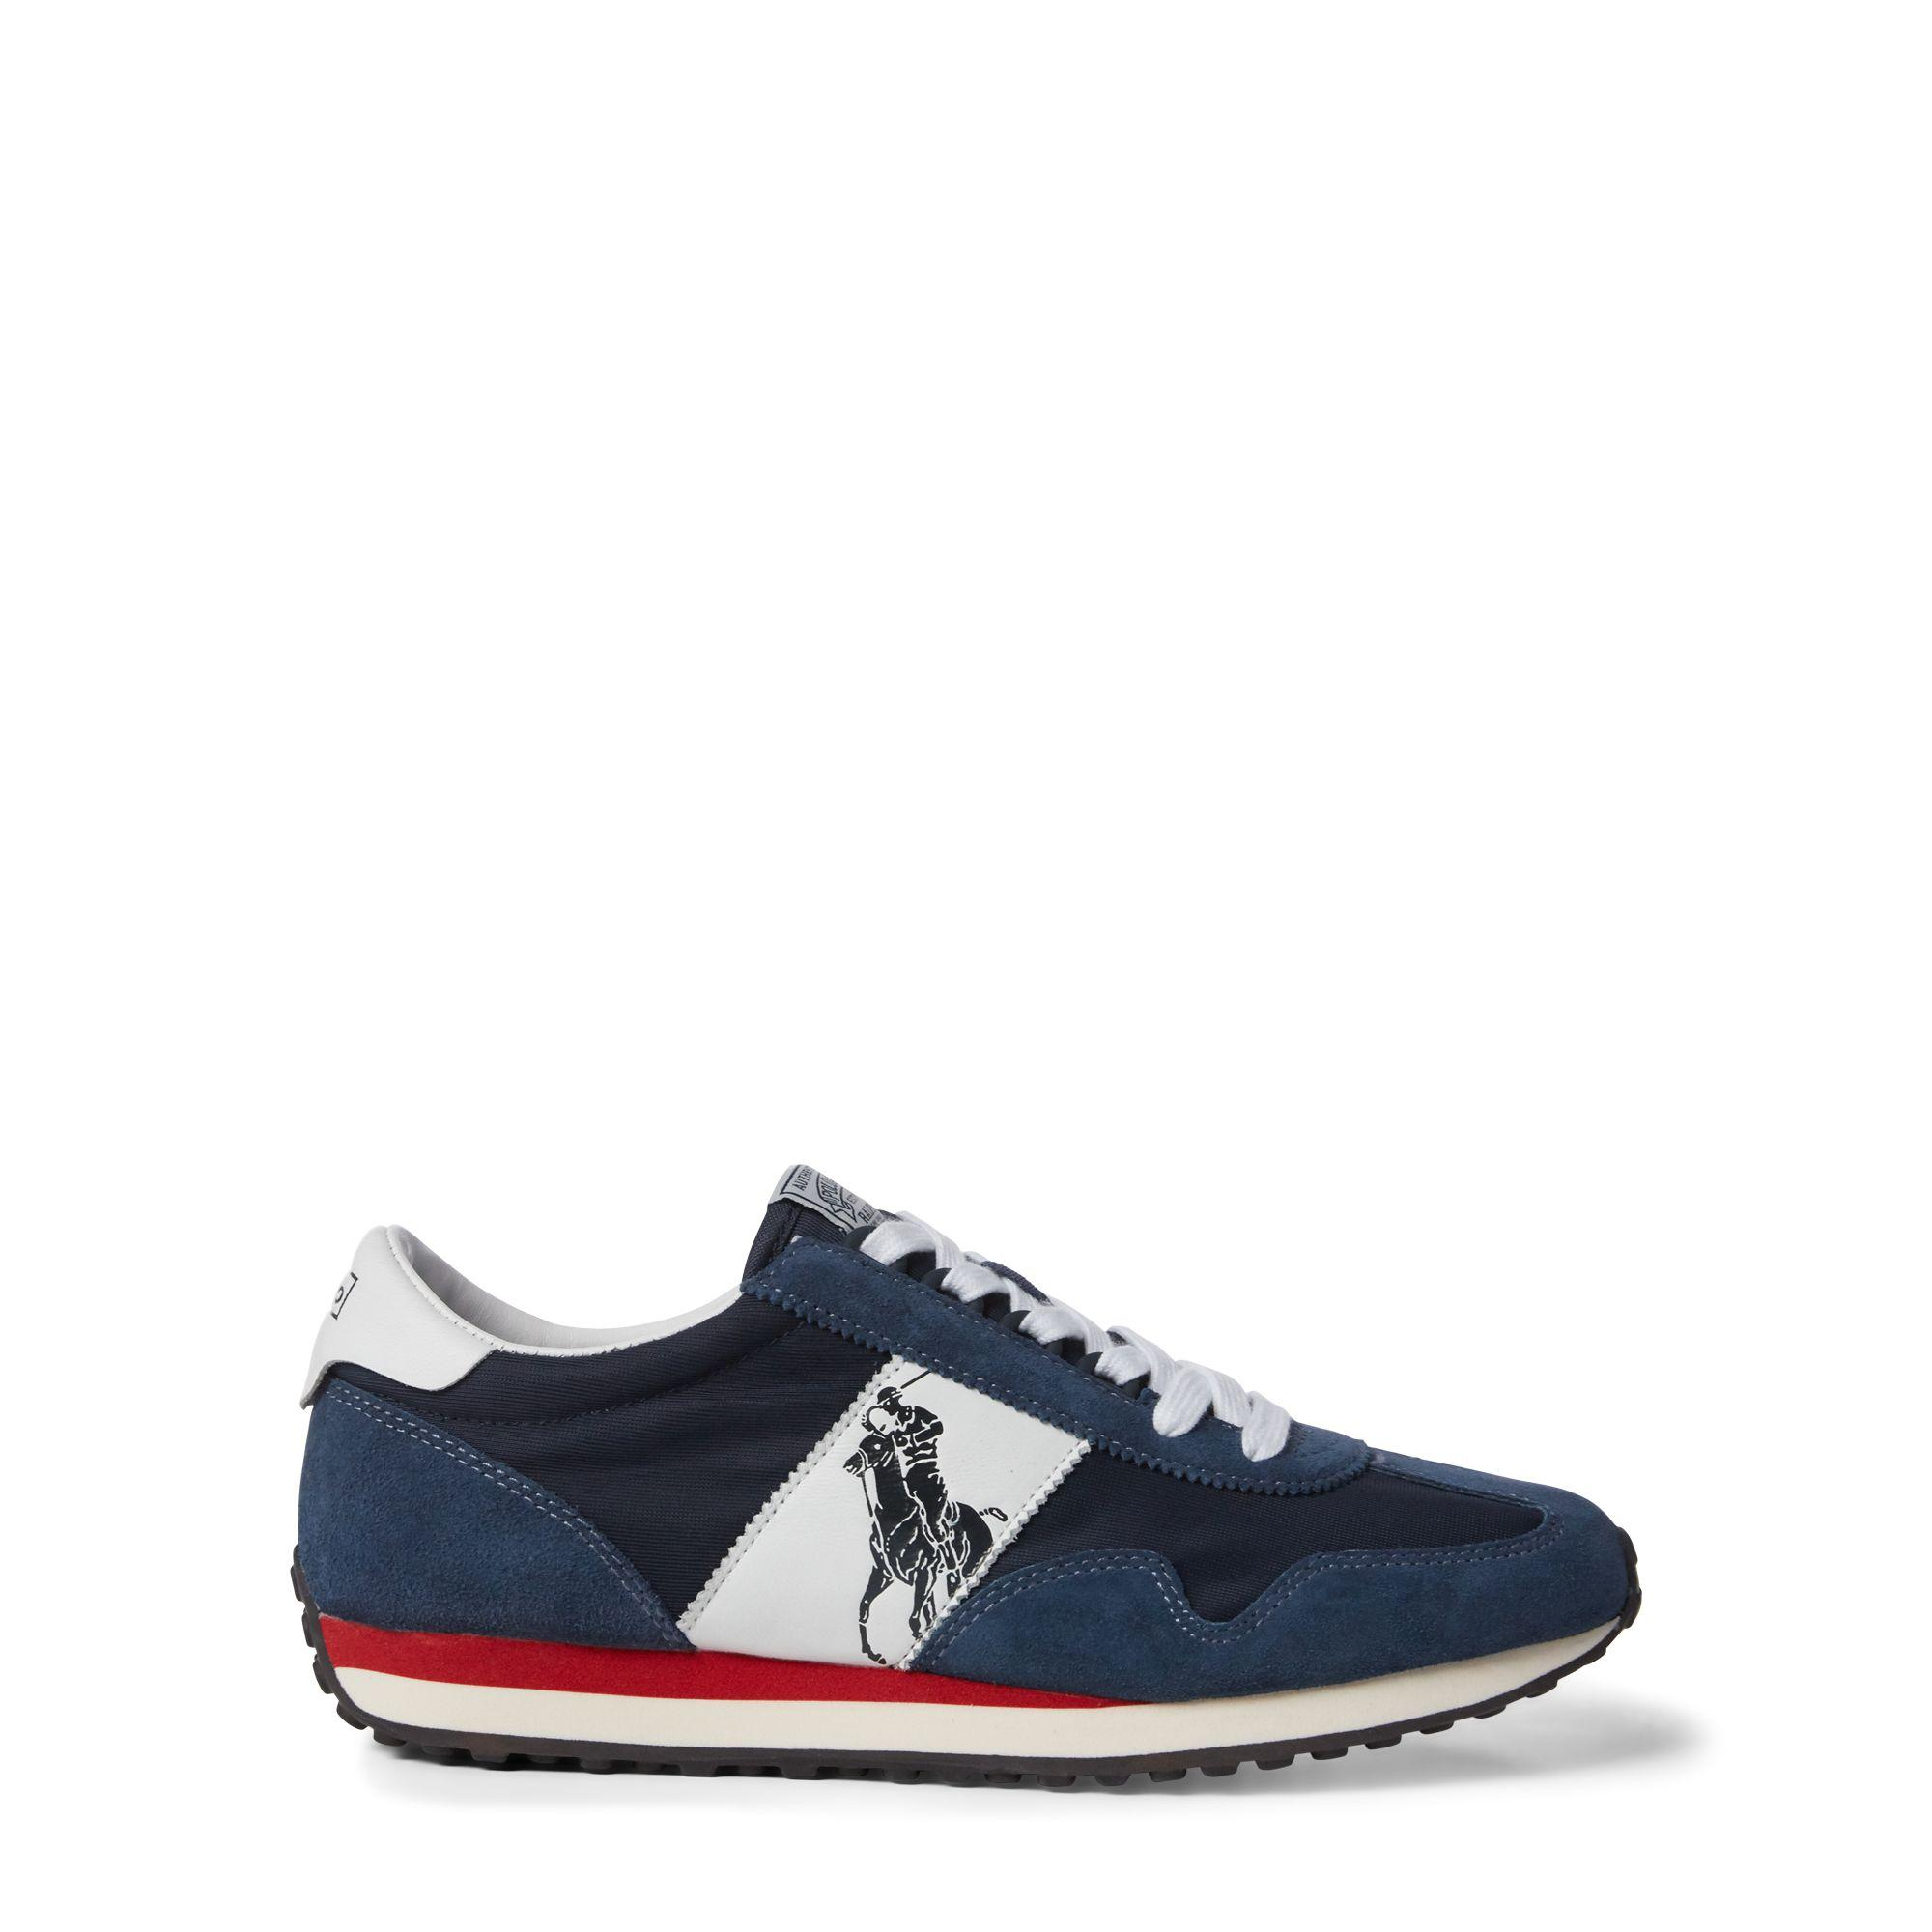 ae43669c44d9c Lyst - Polo Ralph Lauren Train 90 Pp Runner Style Trainers in Blue ...